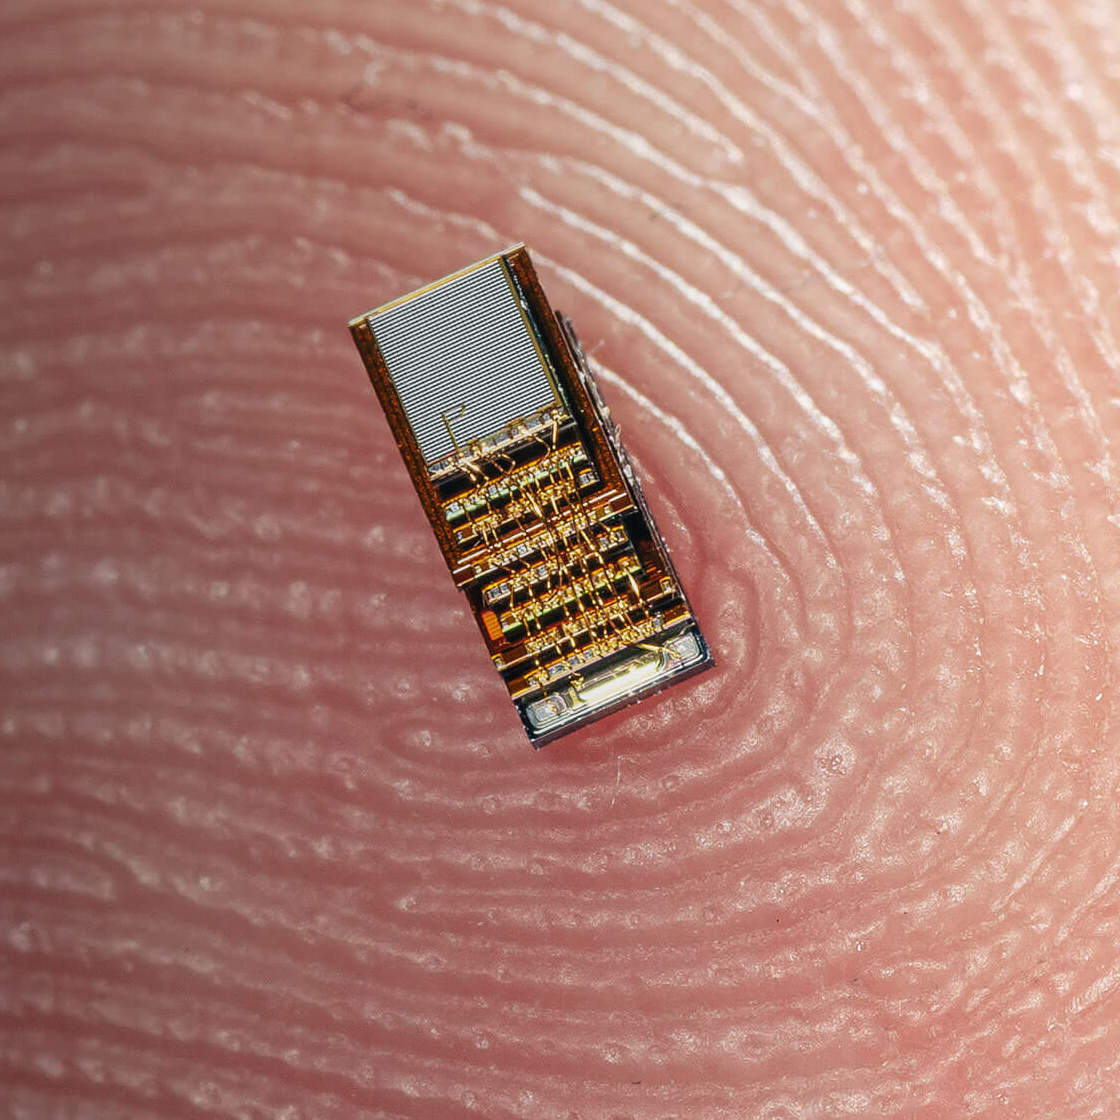 M3 sensor on a finger